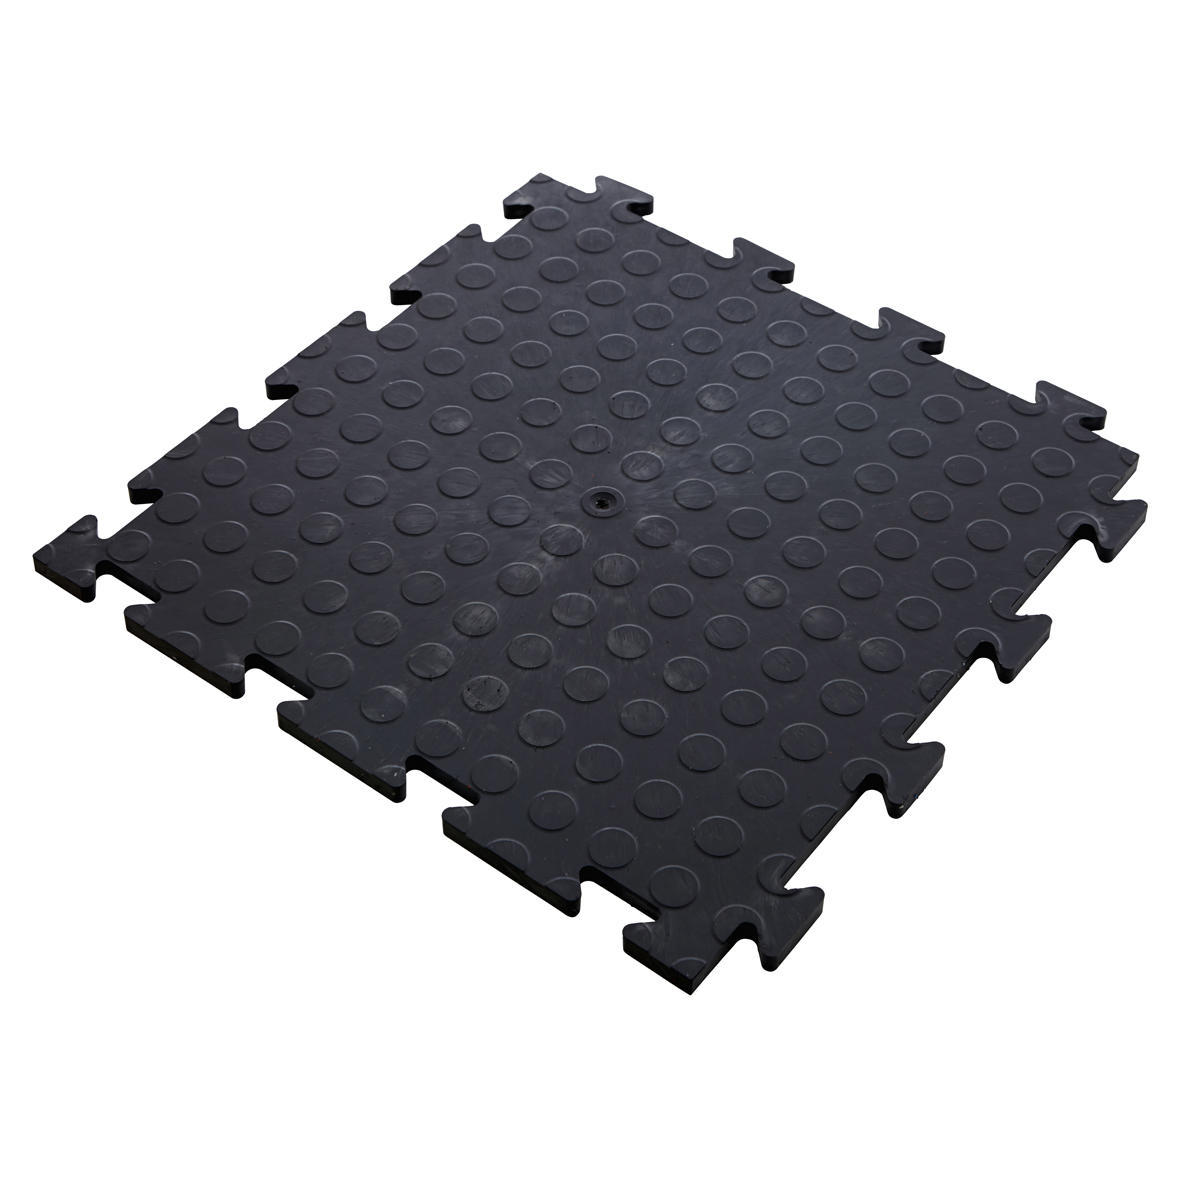 Heavy duty interlocking floor mats gurus floor for Heavy duty vinyl flooring